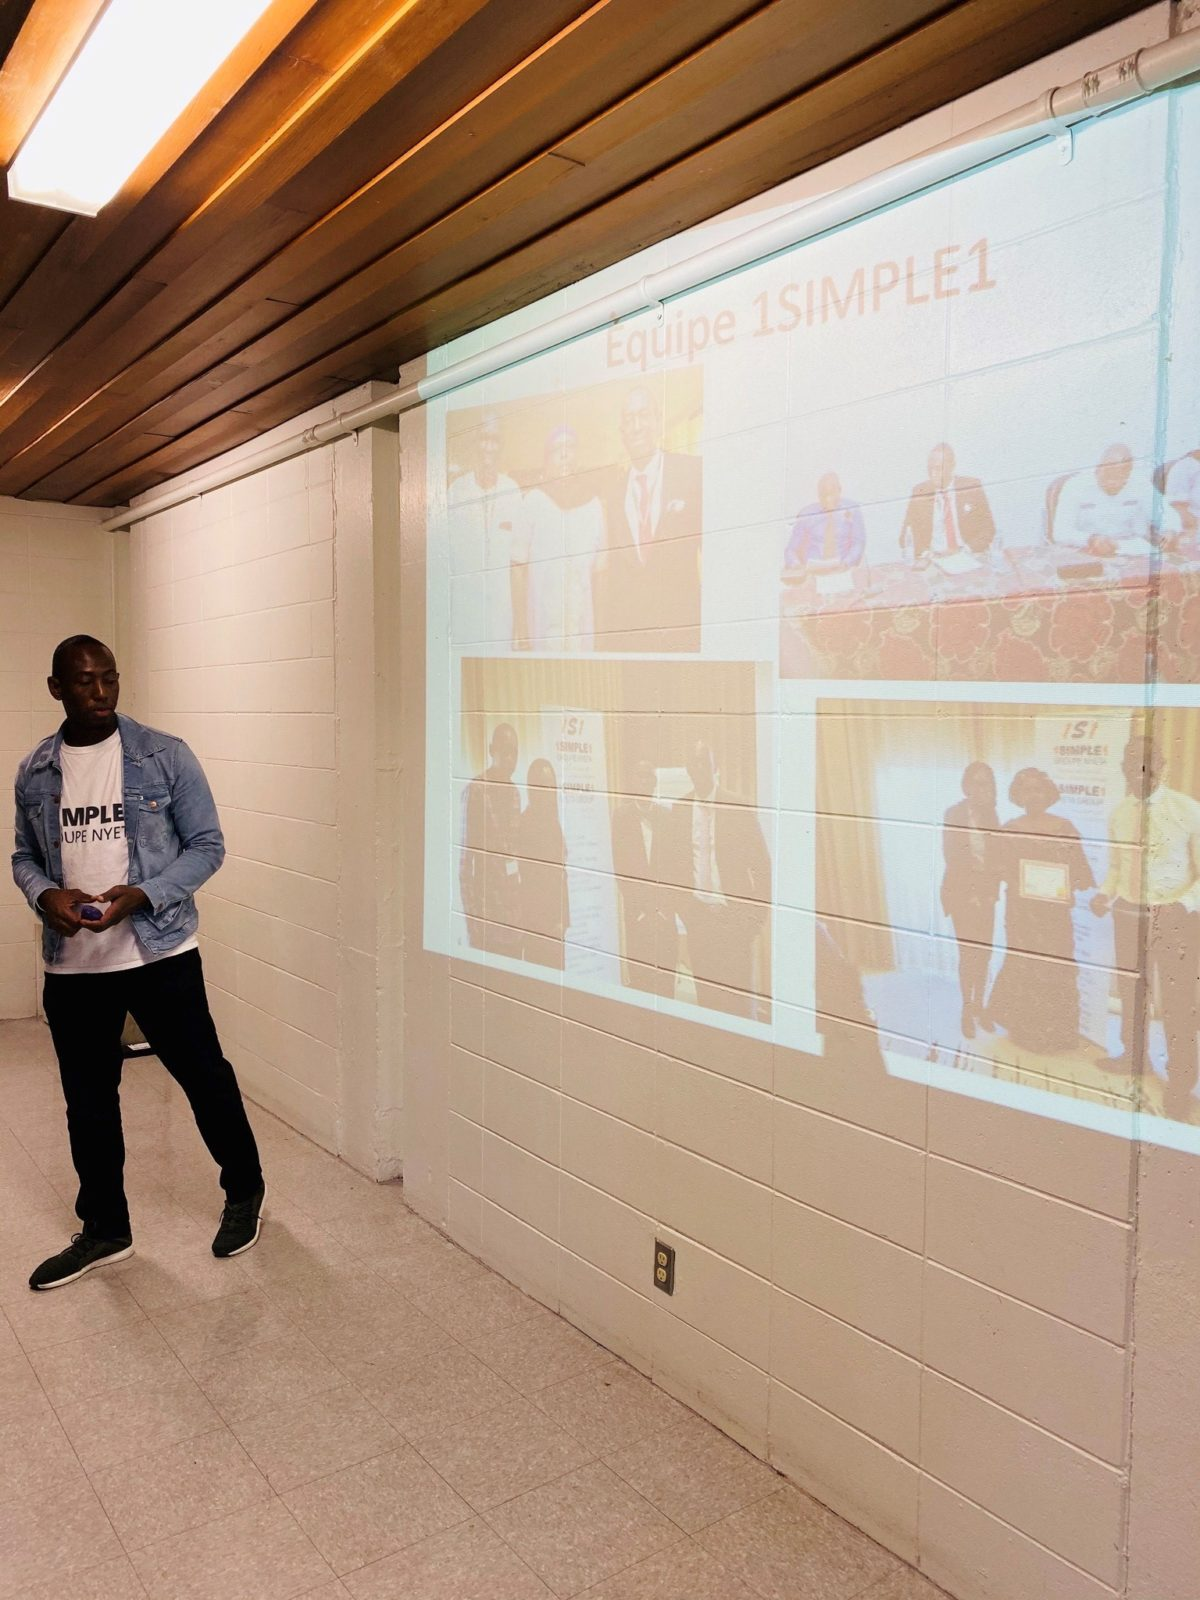 The CEO of 1simple1 introduce his team in Canada